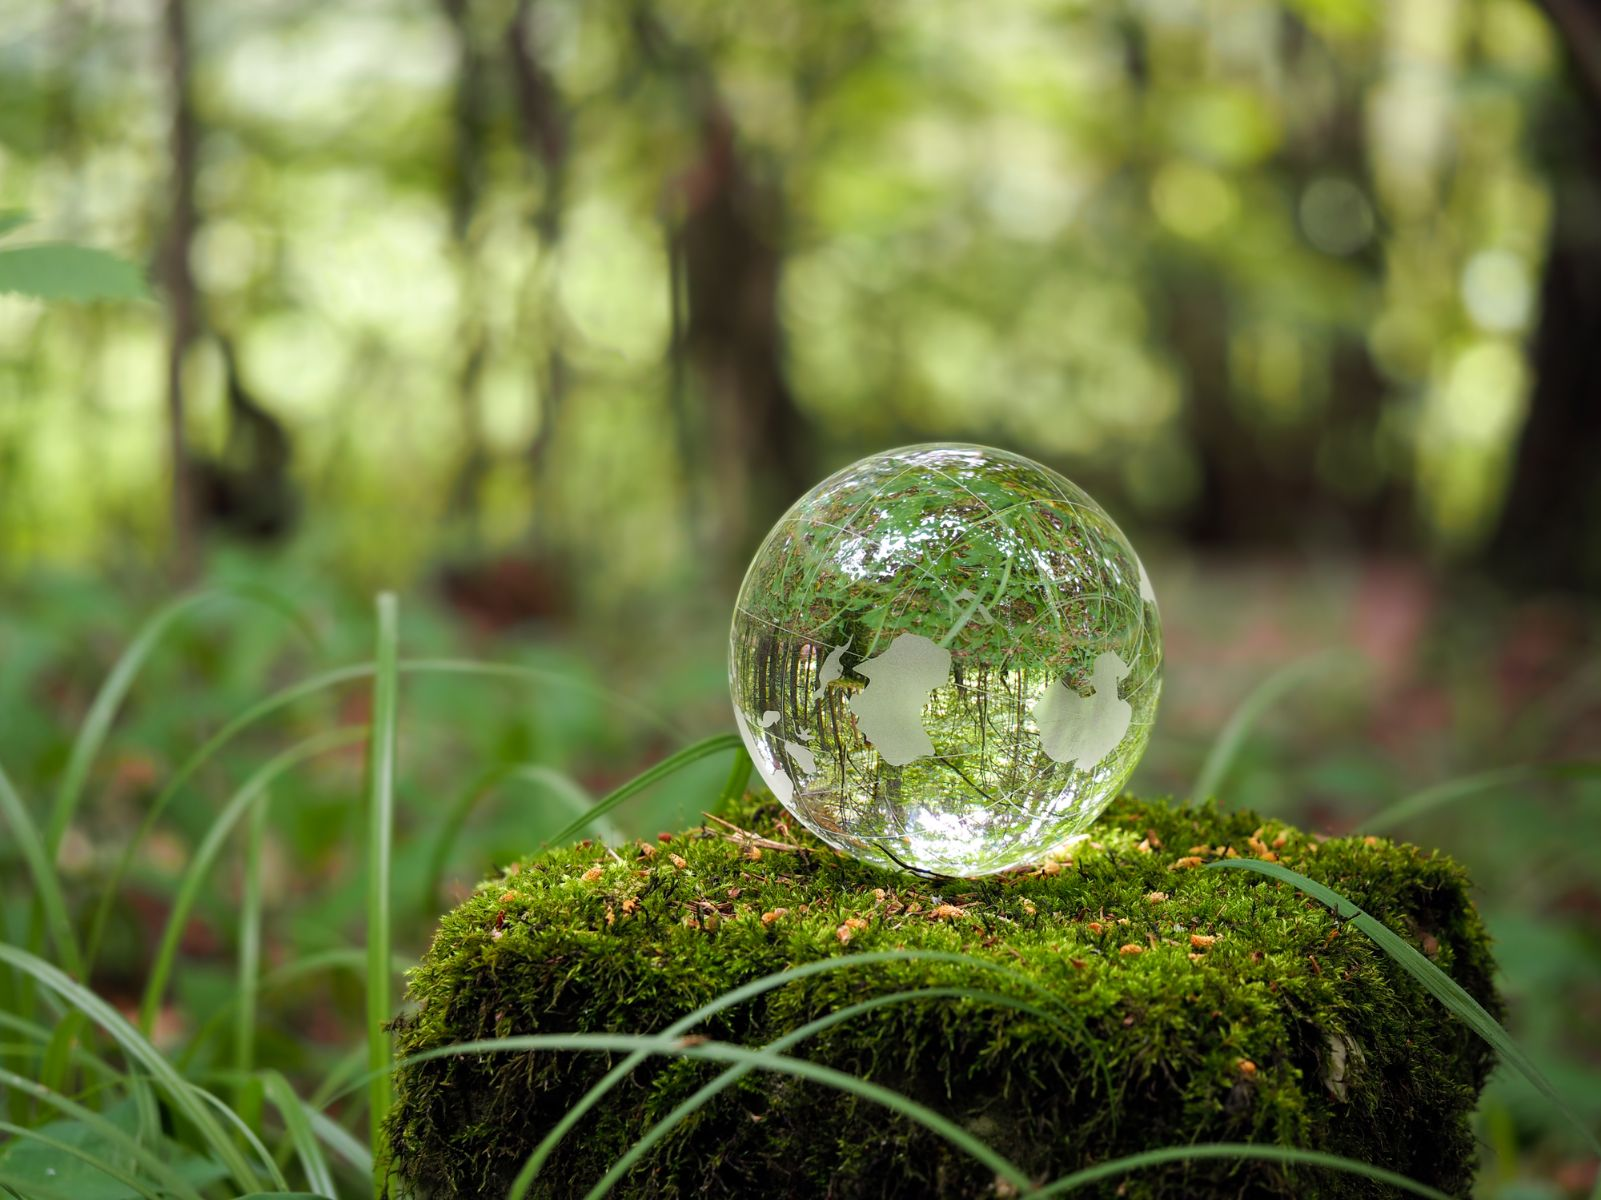 Globe in the forest. Ball on a stump with moss.